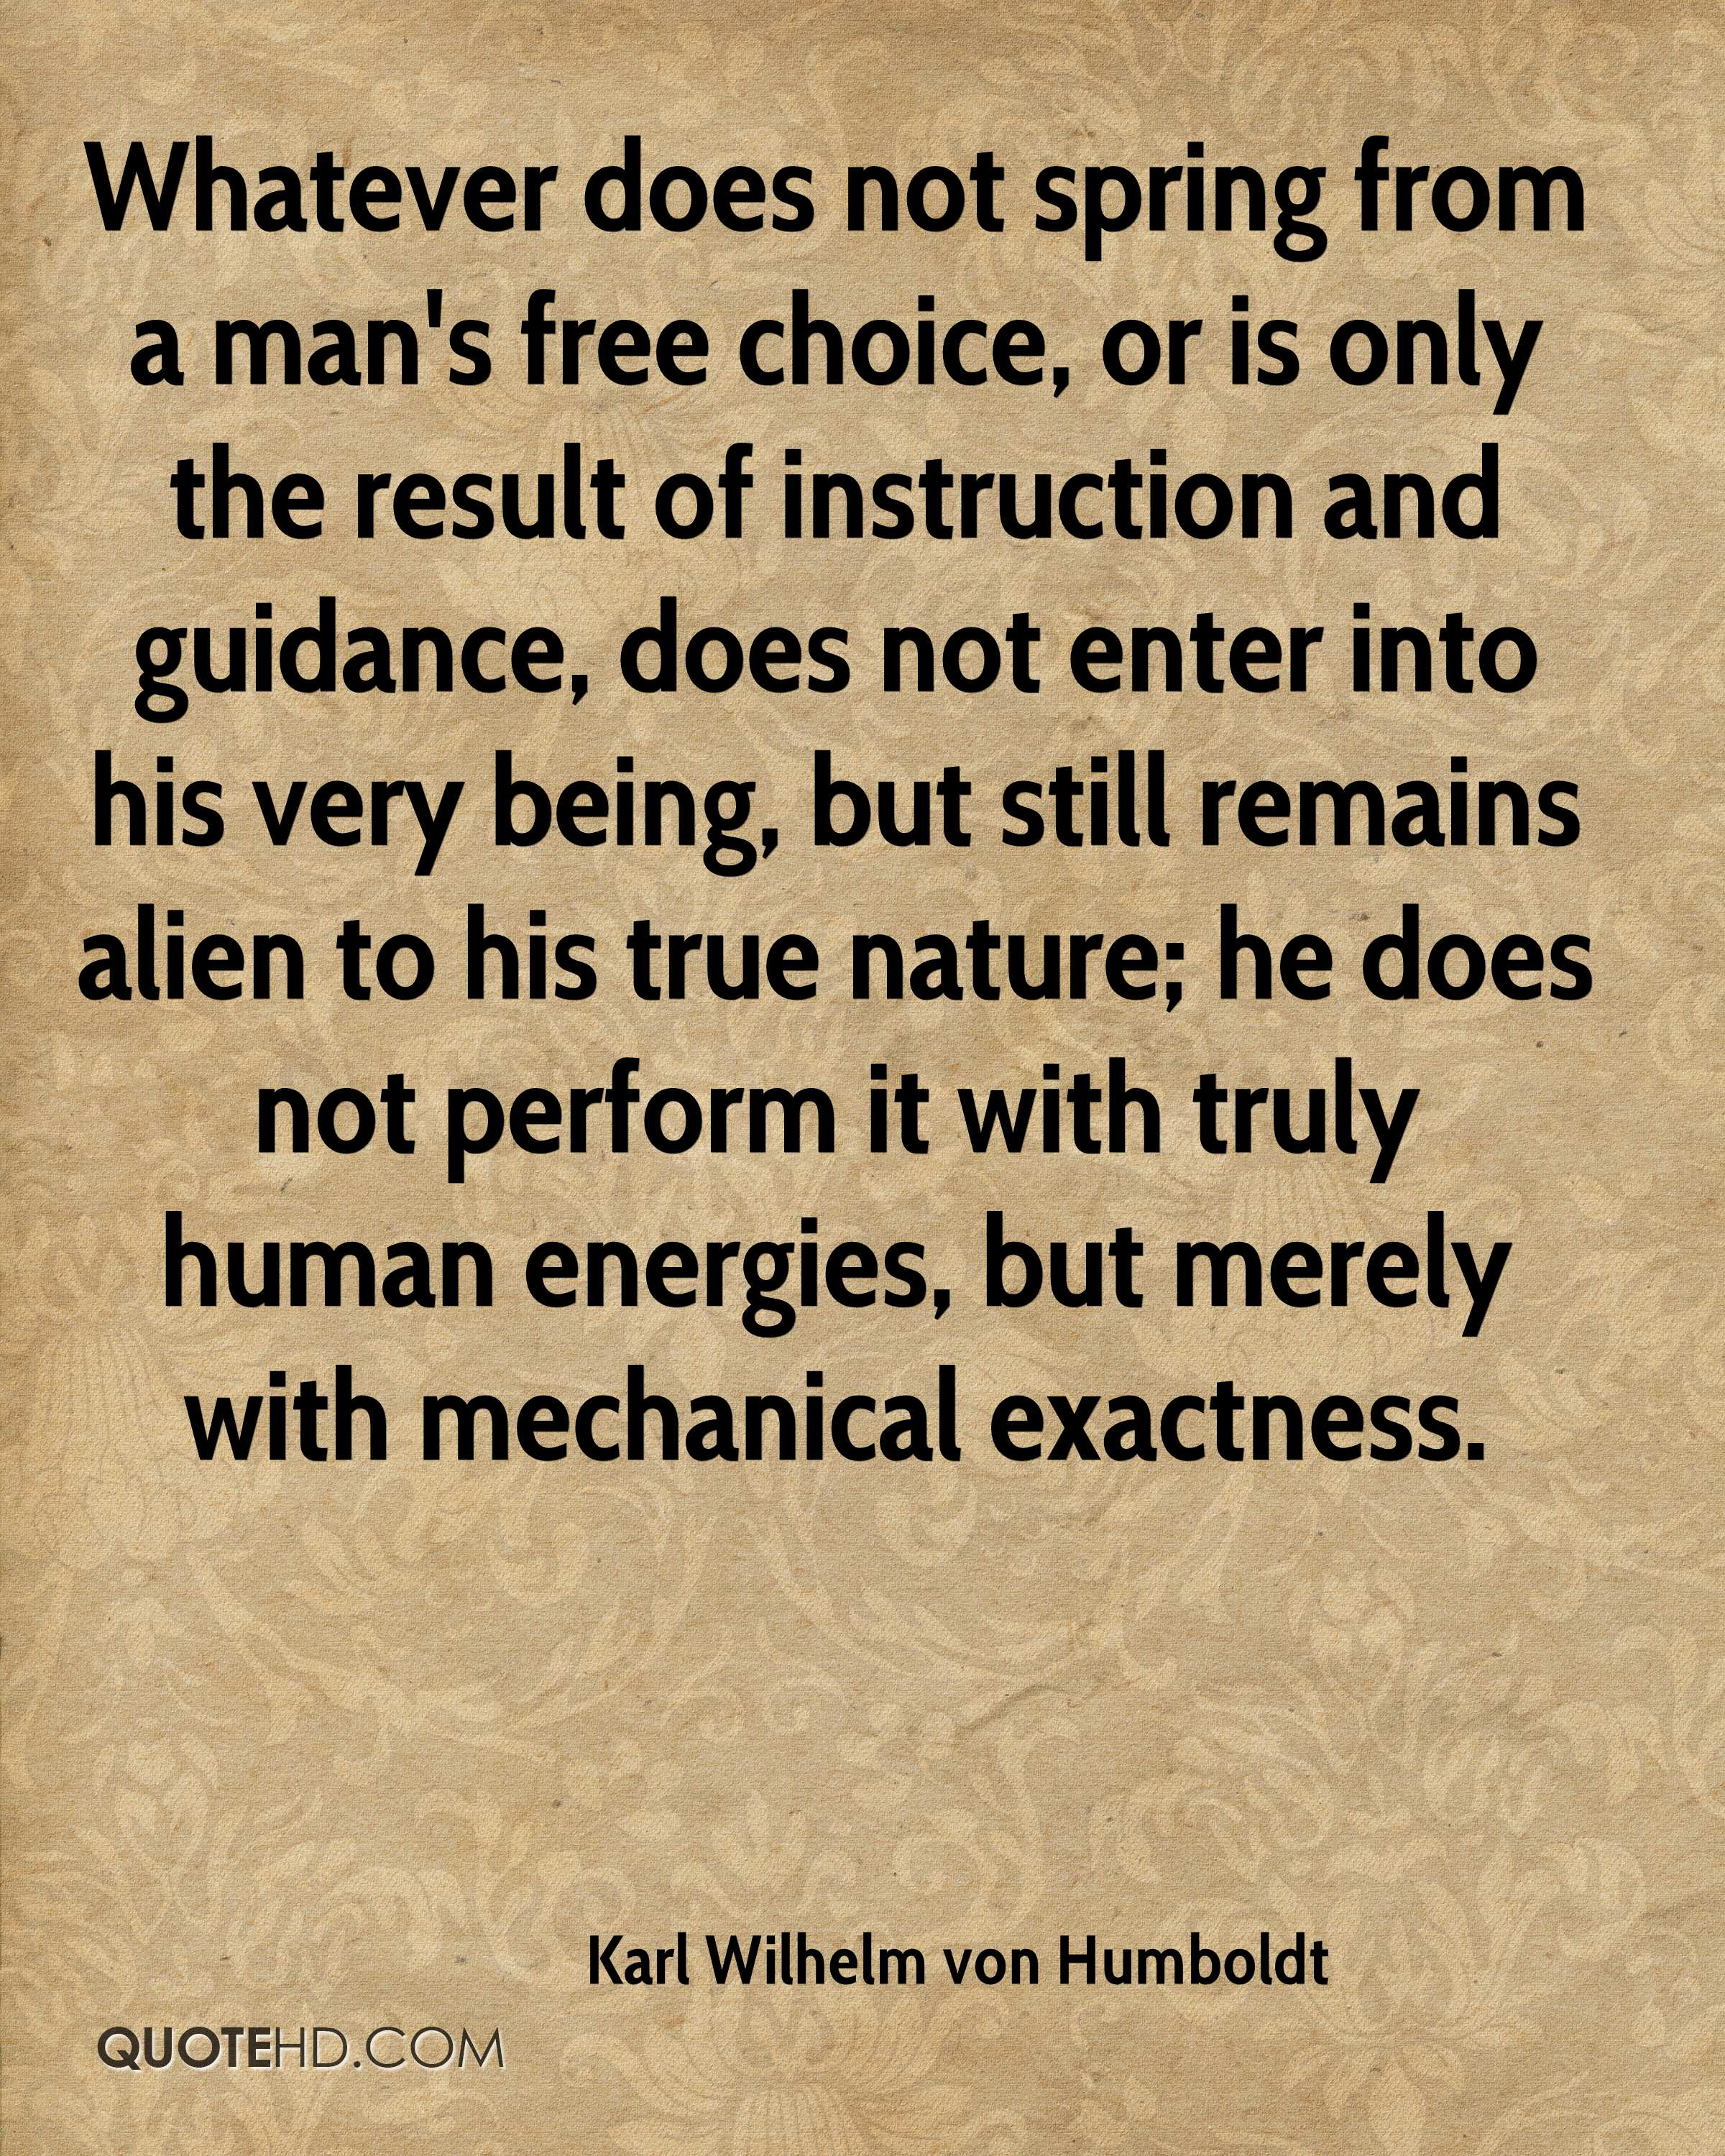 Whatever does not spring from a man's free choice, or is only the result of instruction and guidance, does not enter into his very being, but still remains alien to his true nature; he does not perform it with truly human energies, but merely with mechanical exactness.